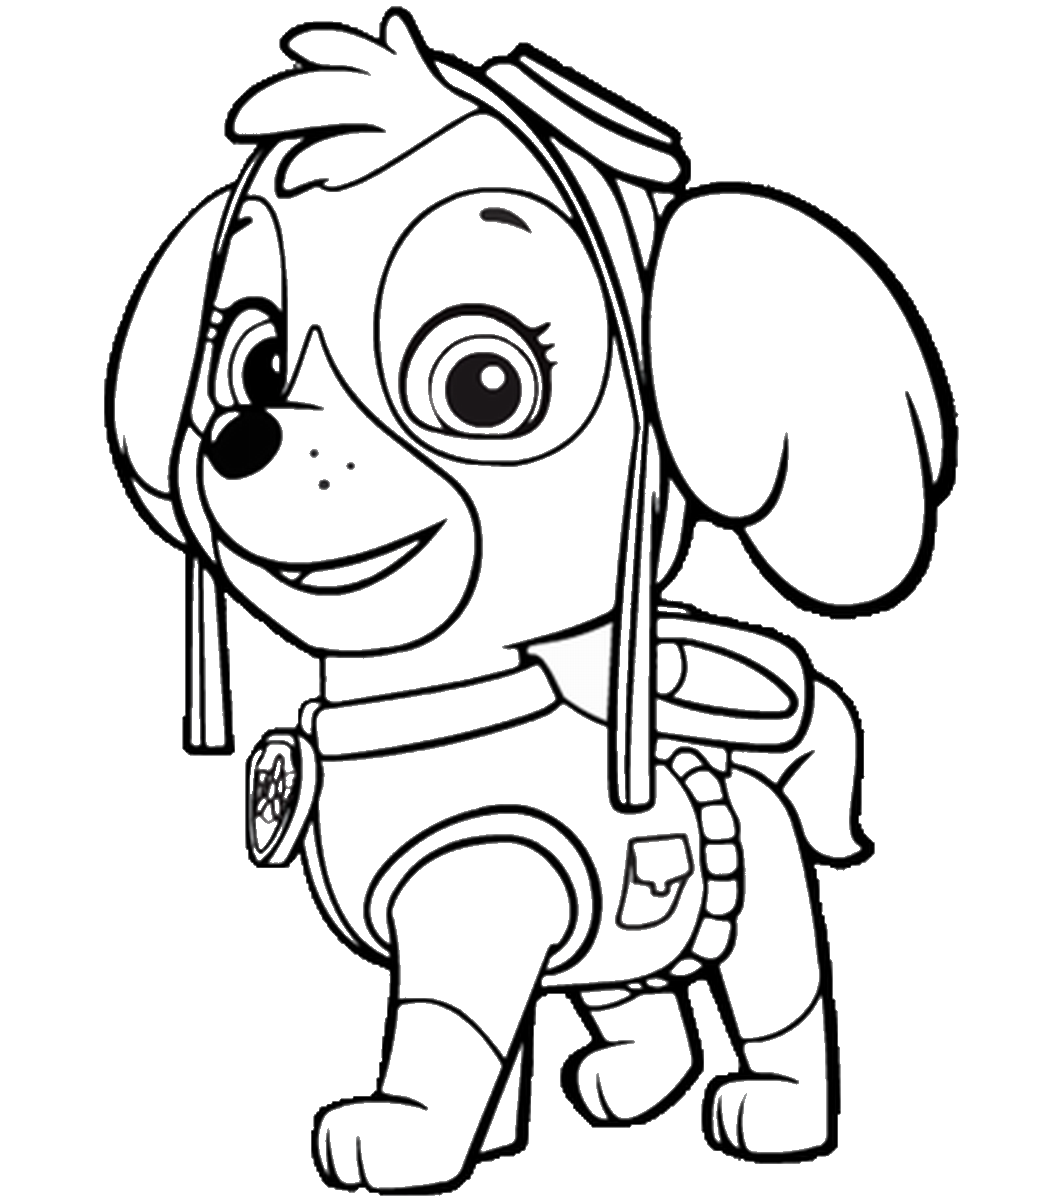 paw patrol pictures to print paw patrol merry christmas coloring page tsgoscom pictures print paw patrol to